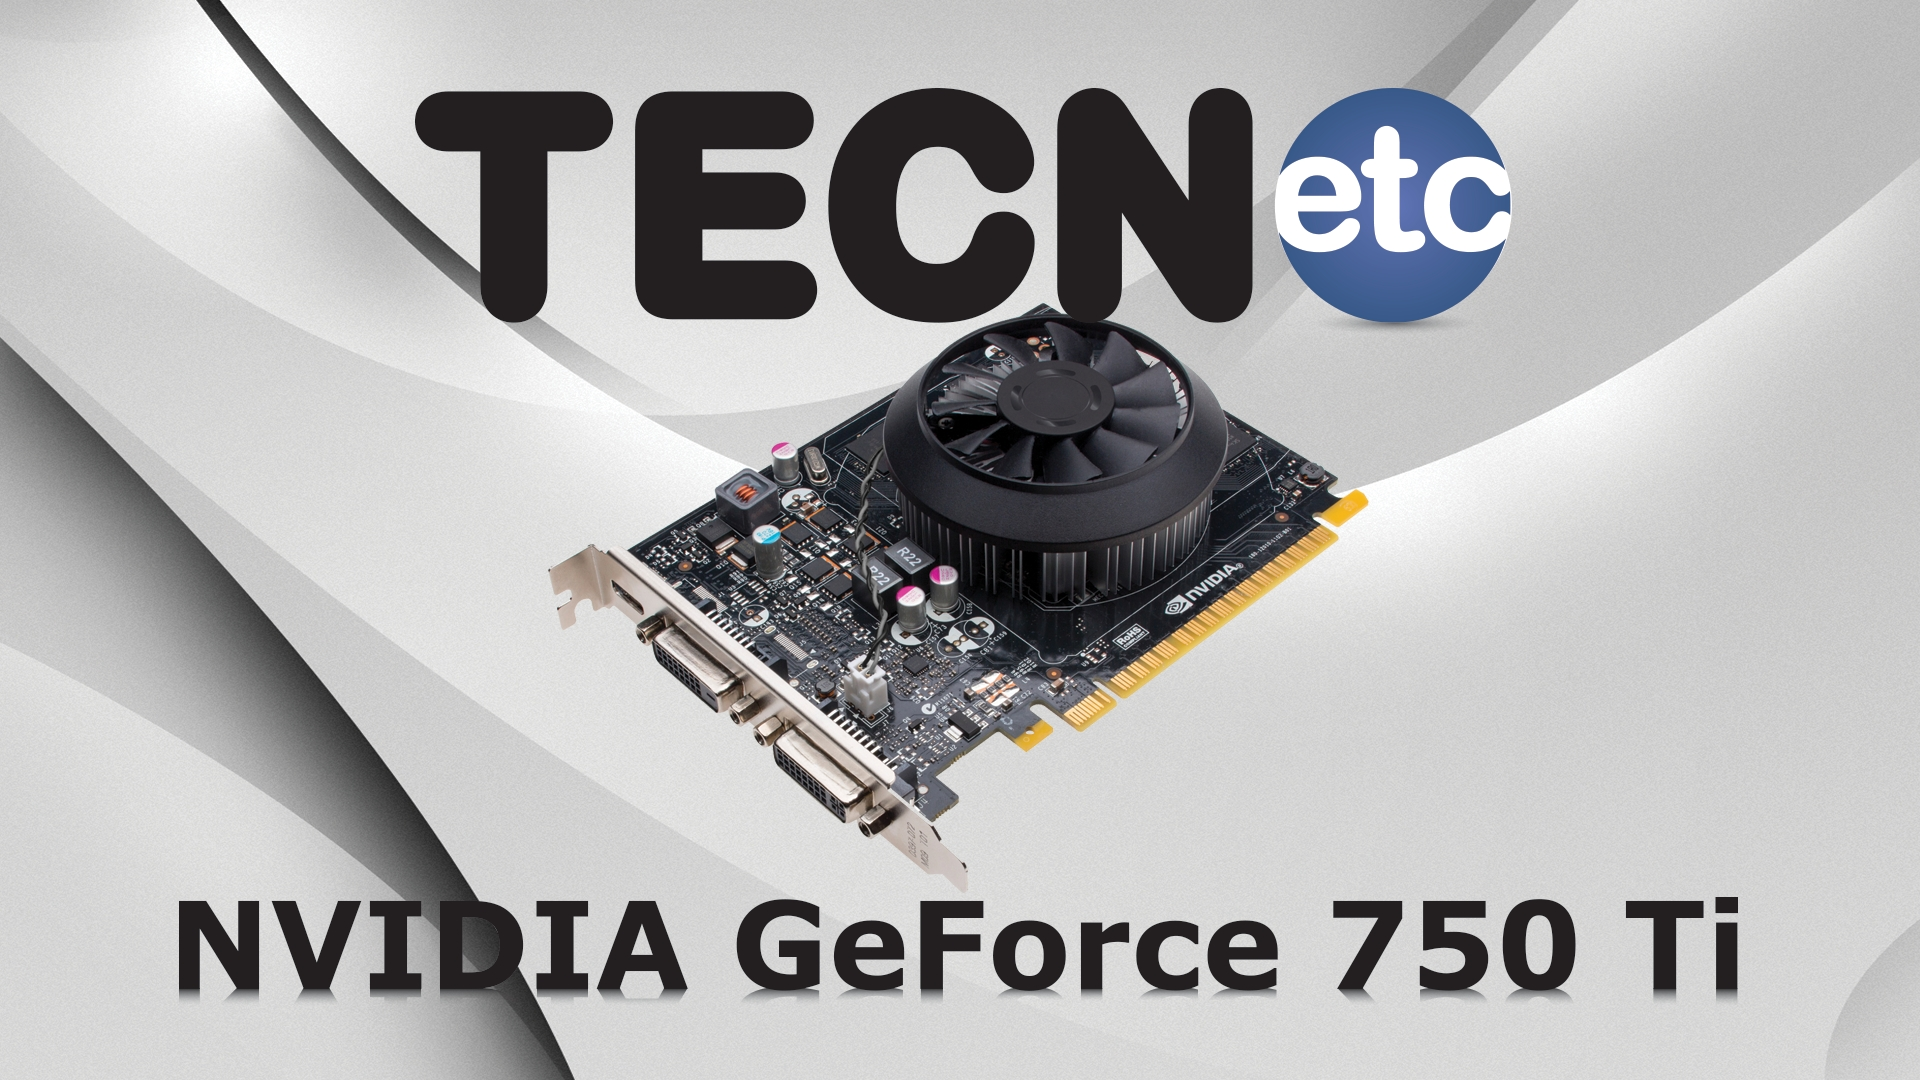 NVIDIA GeForce GTX 750 Ti: Review [+ShadowPlay]